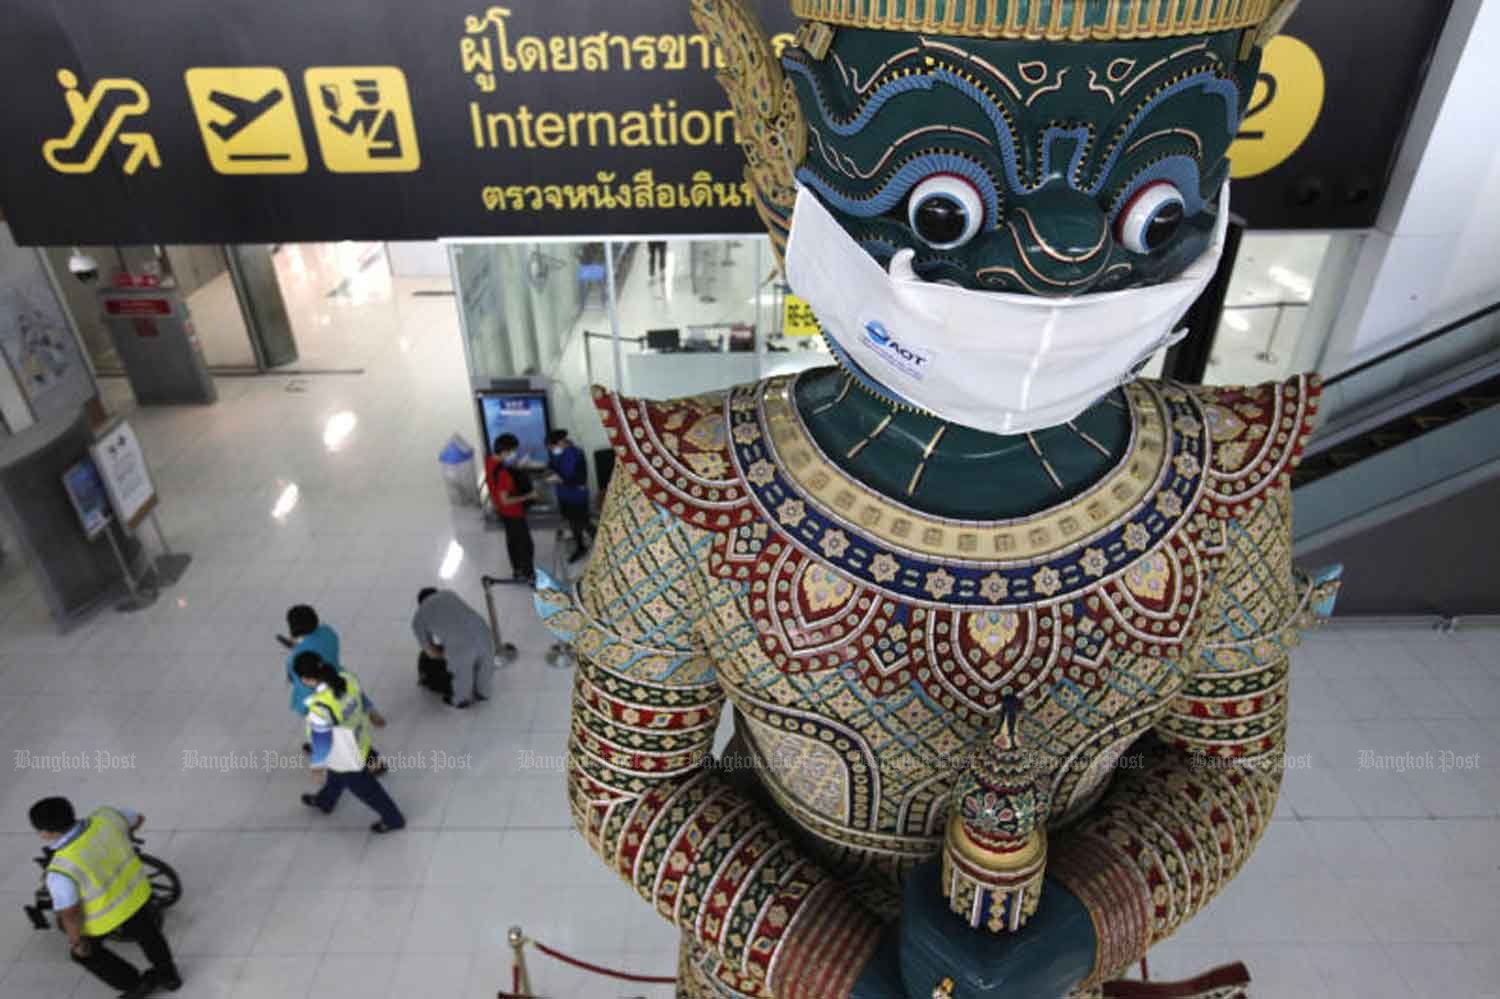 The 'yak' statue at Suvarnabhumi airport wears a face mask as part of a campaign to remind people to continue wearing masks and observe social distancing to prevent transmission of Covid-19. (Photo: Wichan Charoenkiatpakul)